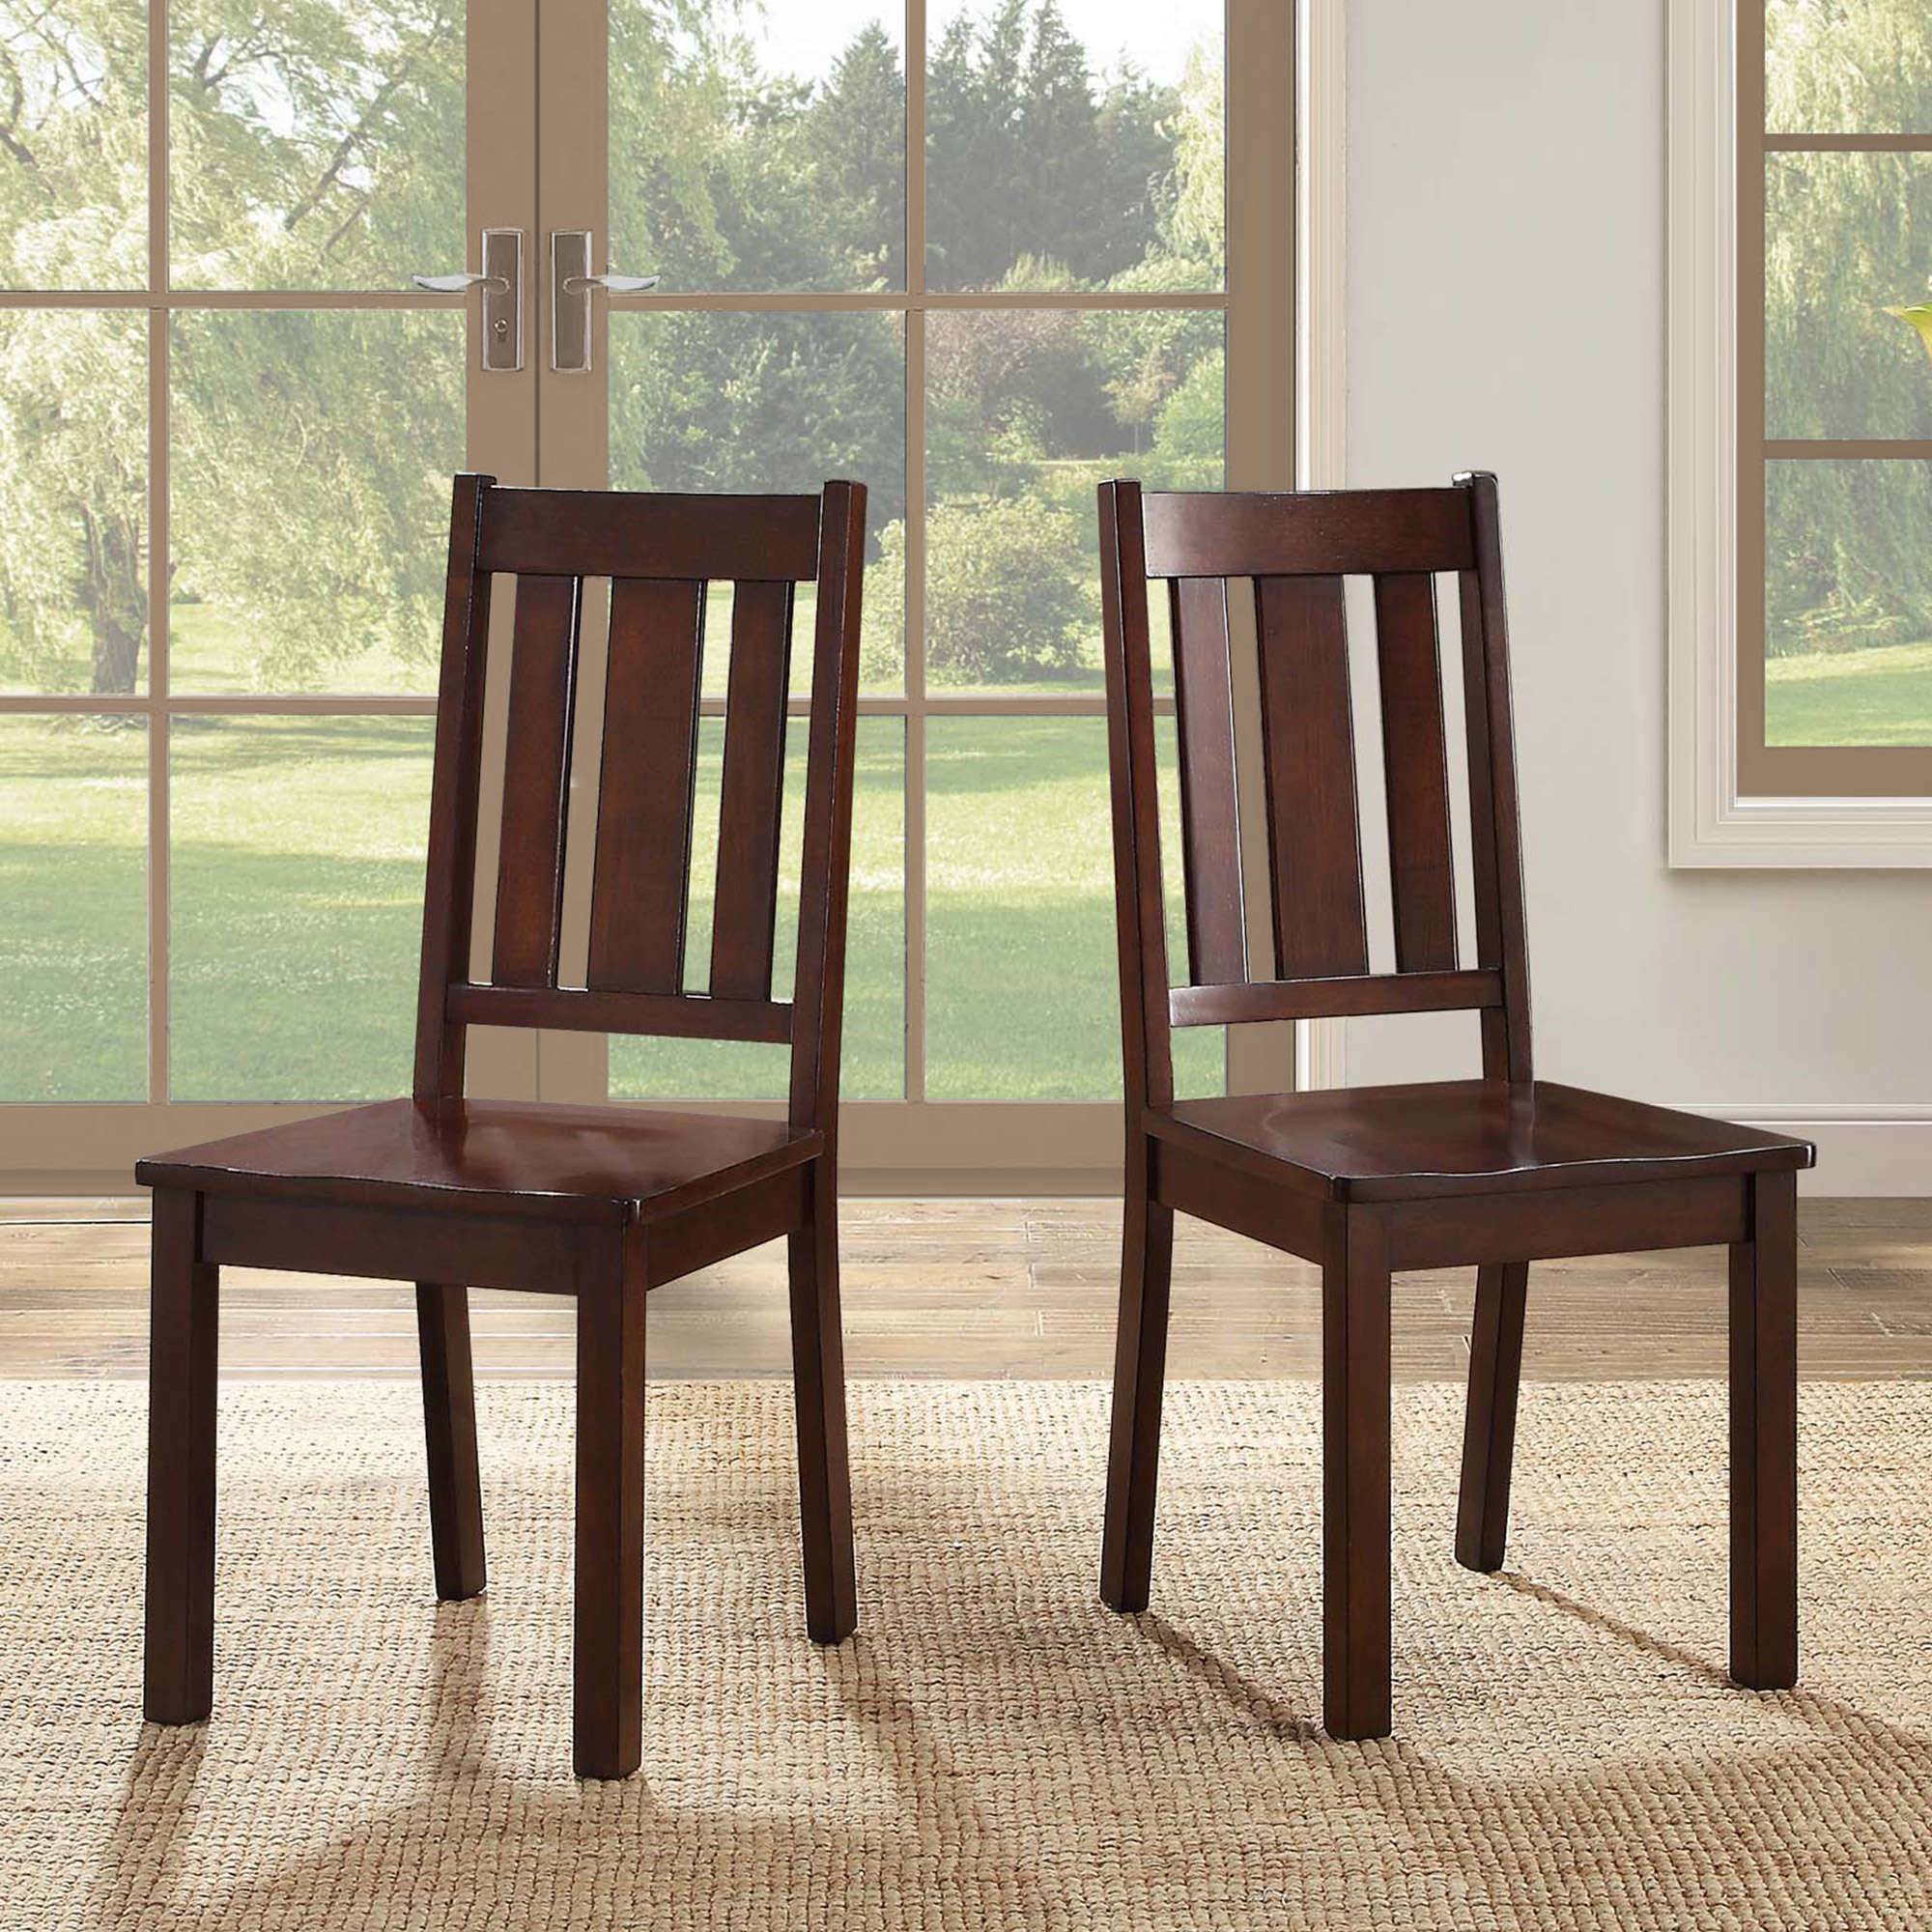 Two dark wood dining chairs